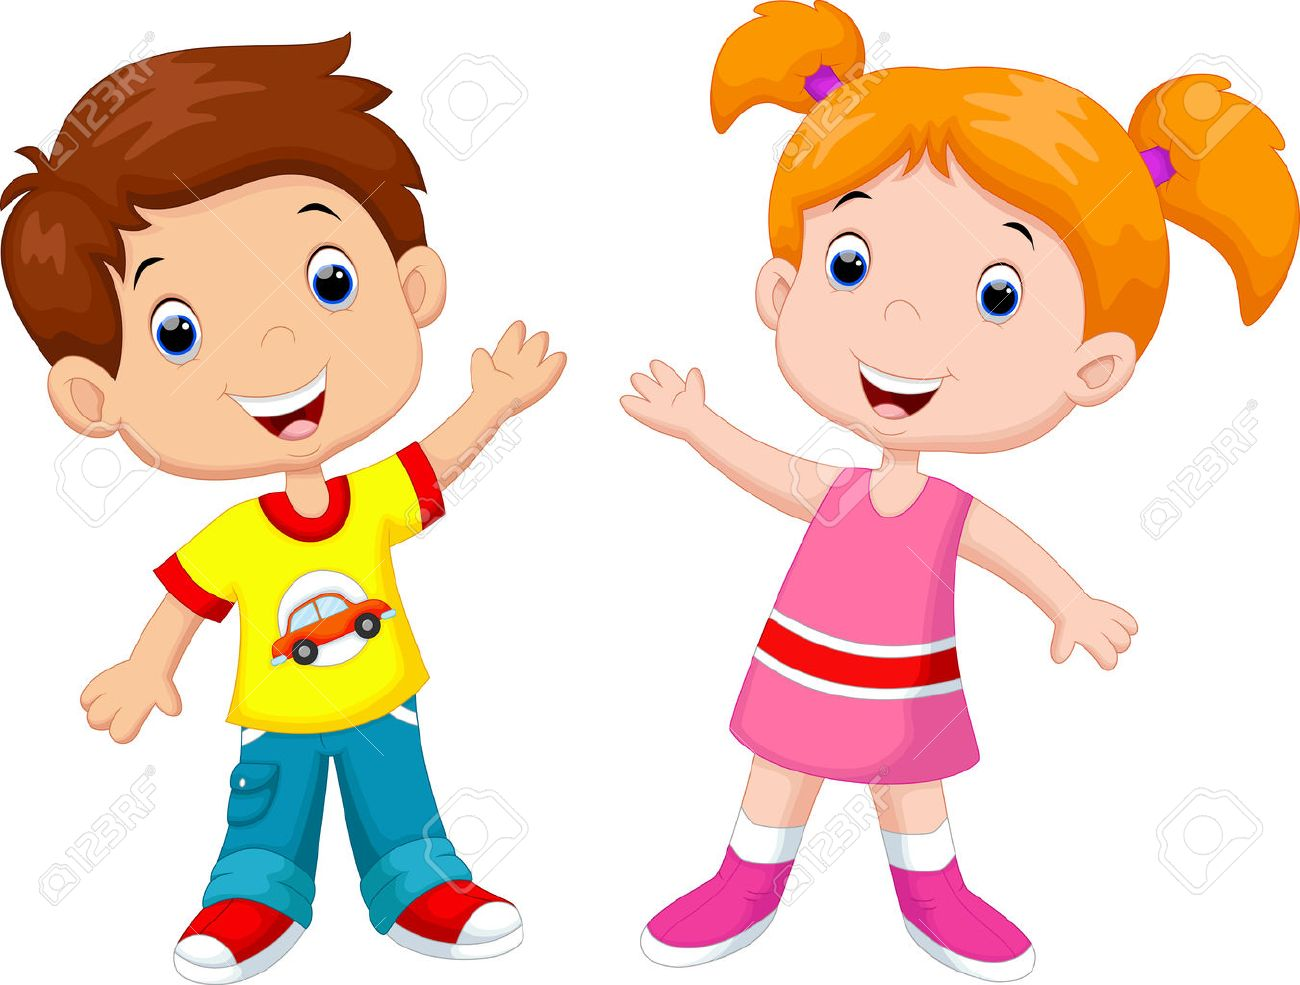 Cute cartoon boy and girl.